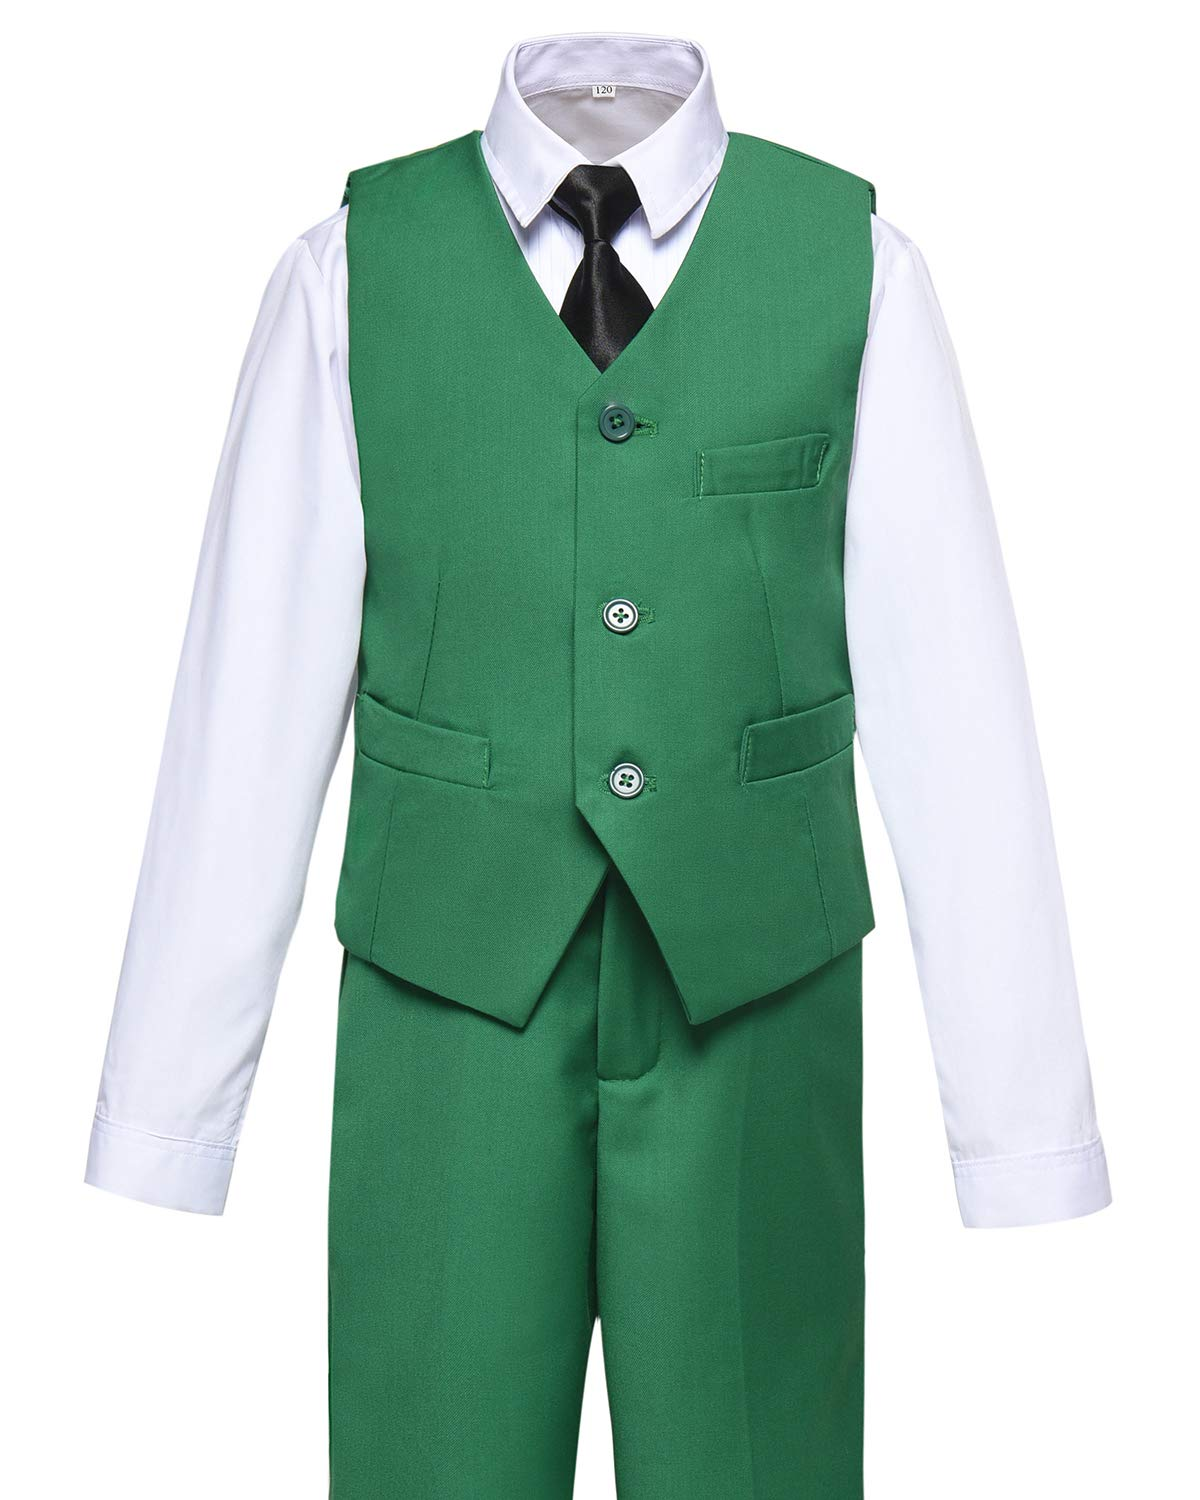 Boys Vest and Pants Set Kids Suit for Boy Formal Tuxedo Dresswear Outfit Green Size 7 by Visaccy (Image #2)